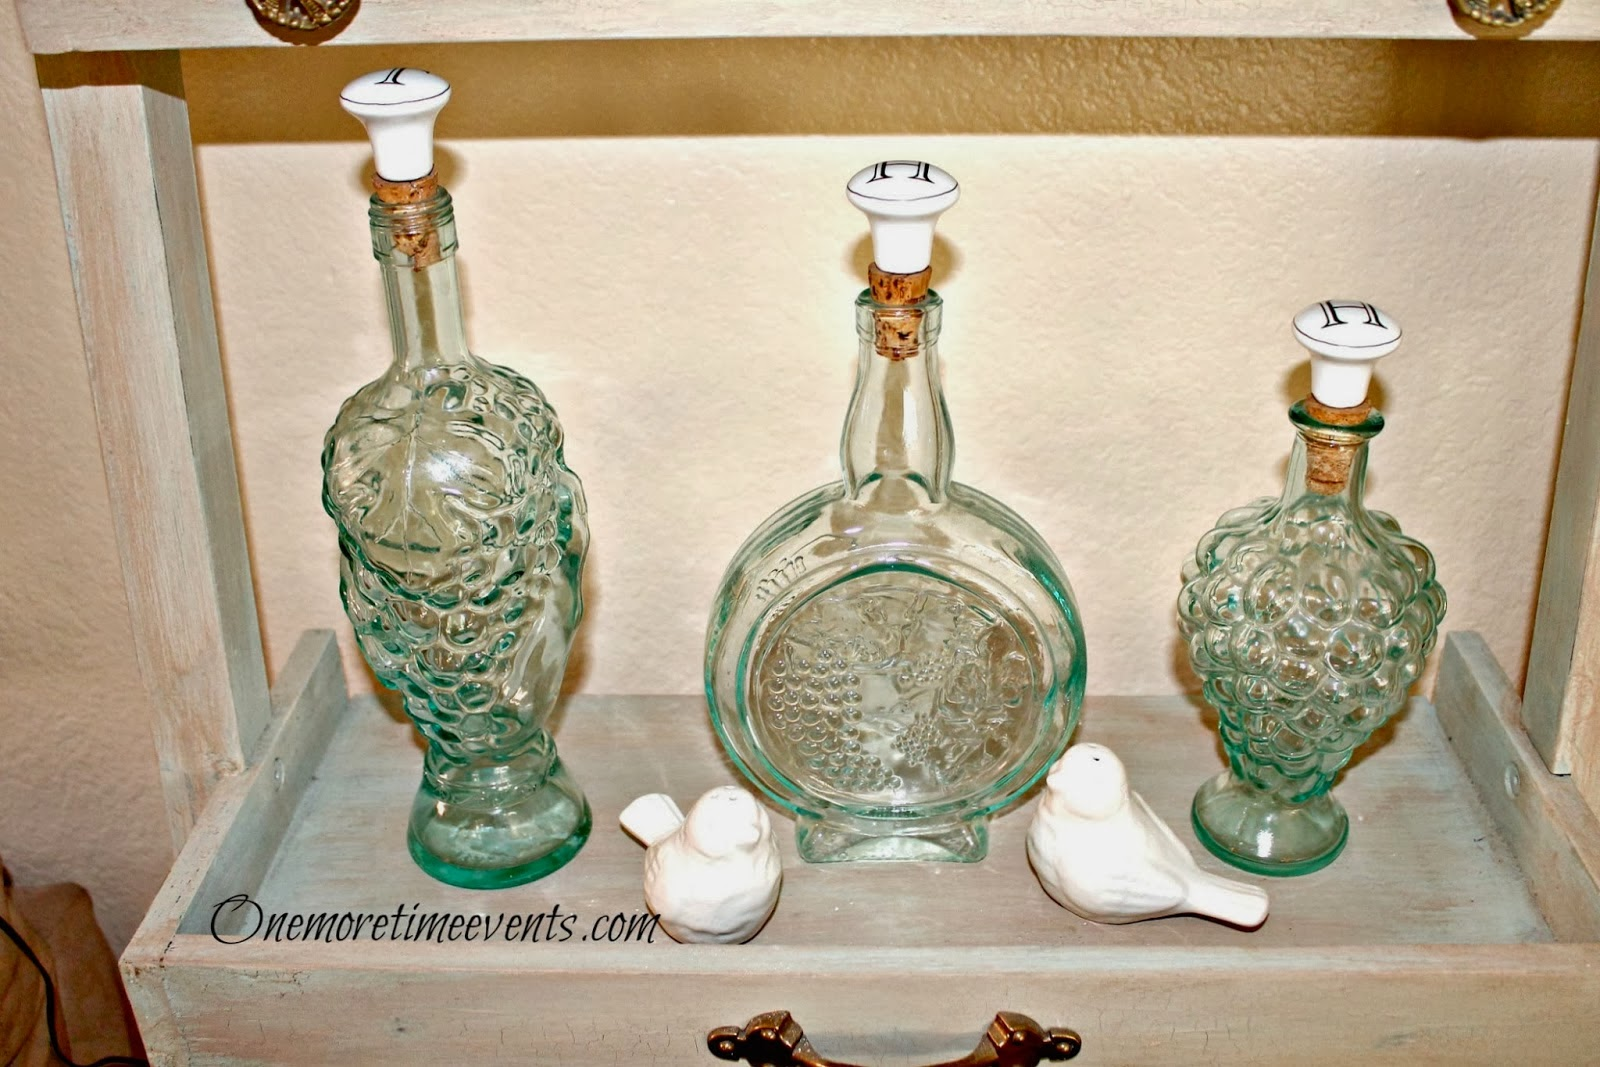 Monogram knobs added to green bottles at One More Time Events.com #monogramknobs,#greenglassbottles